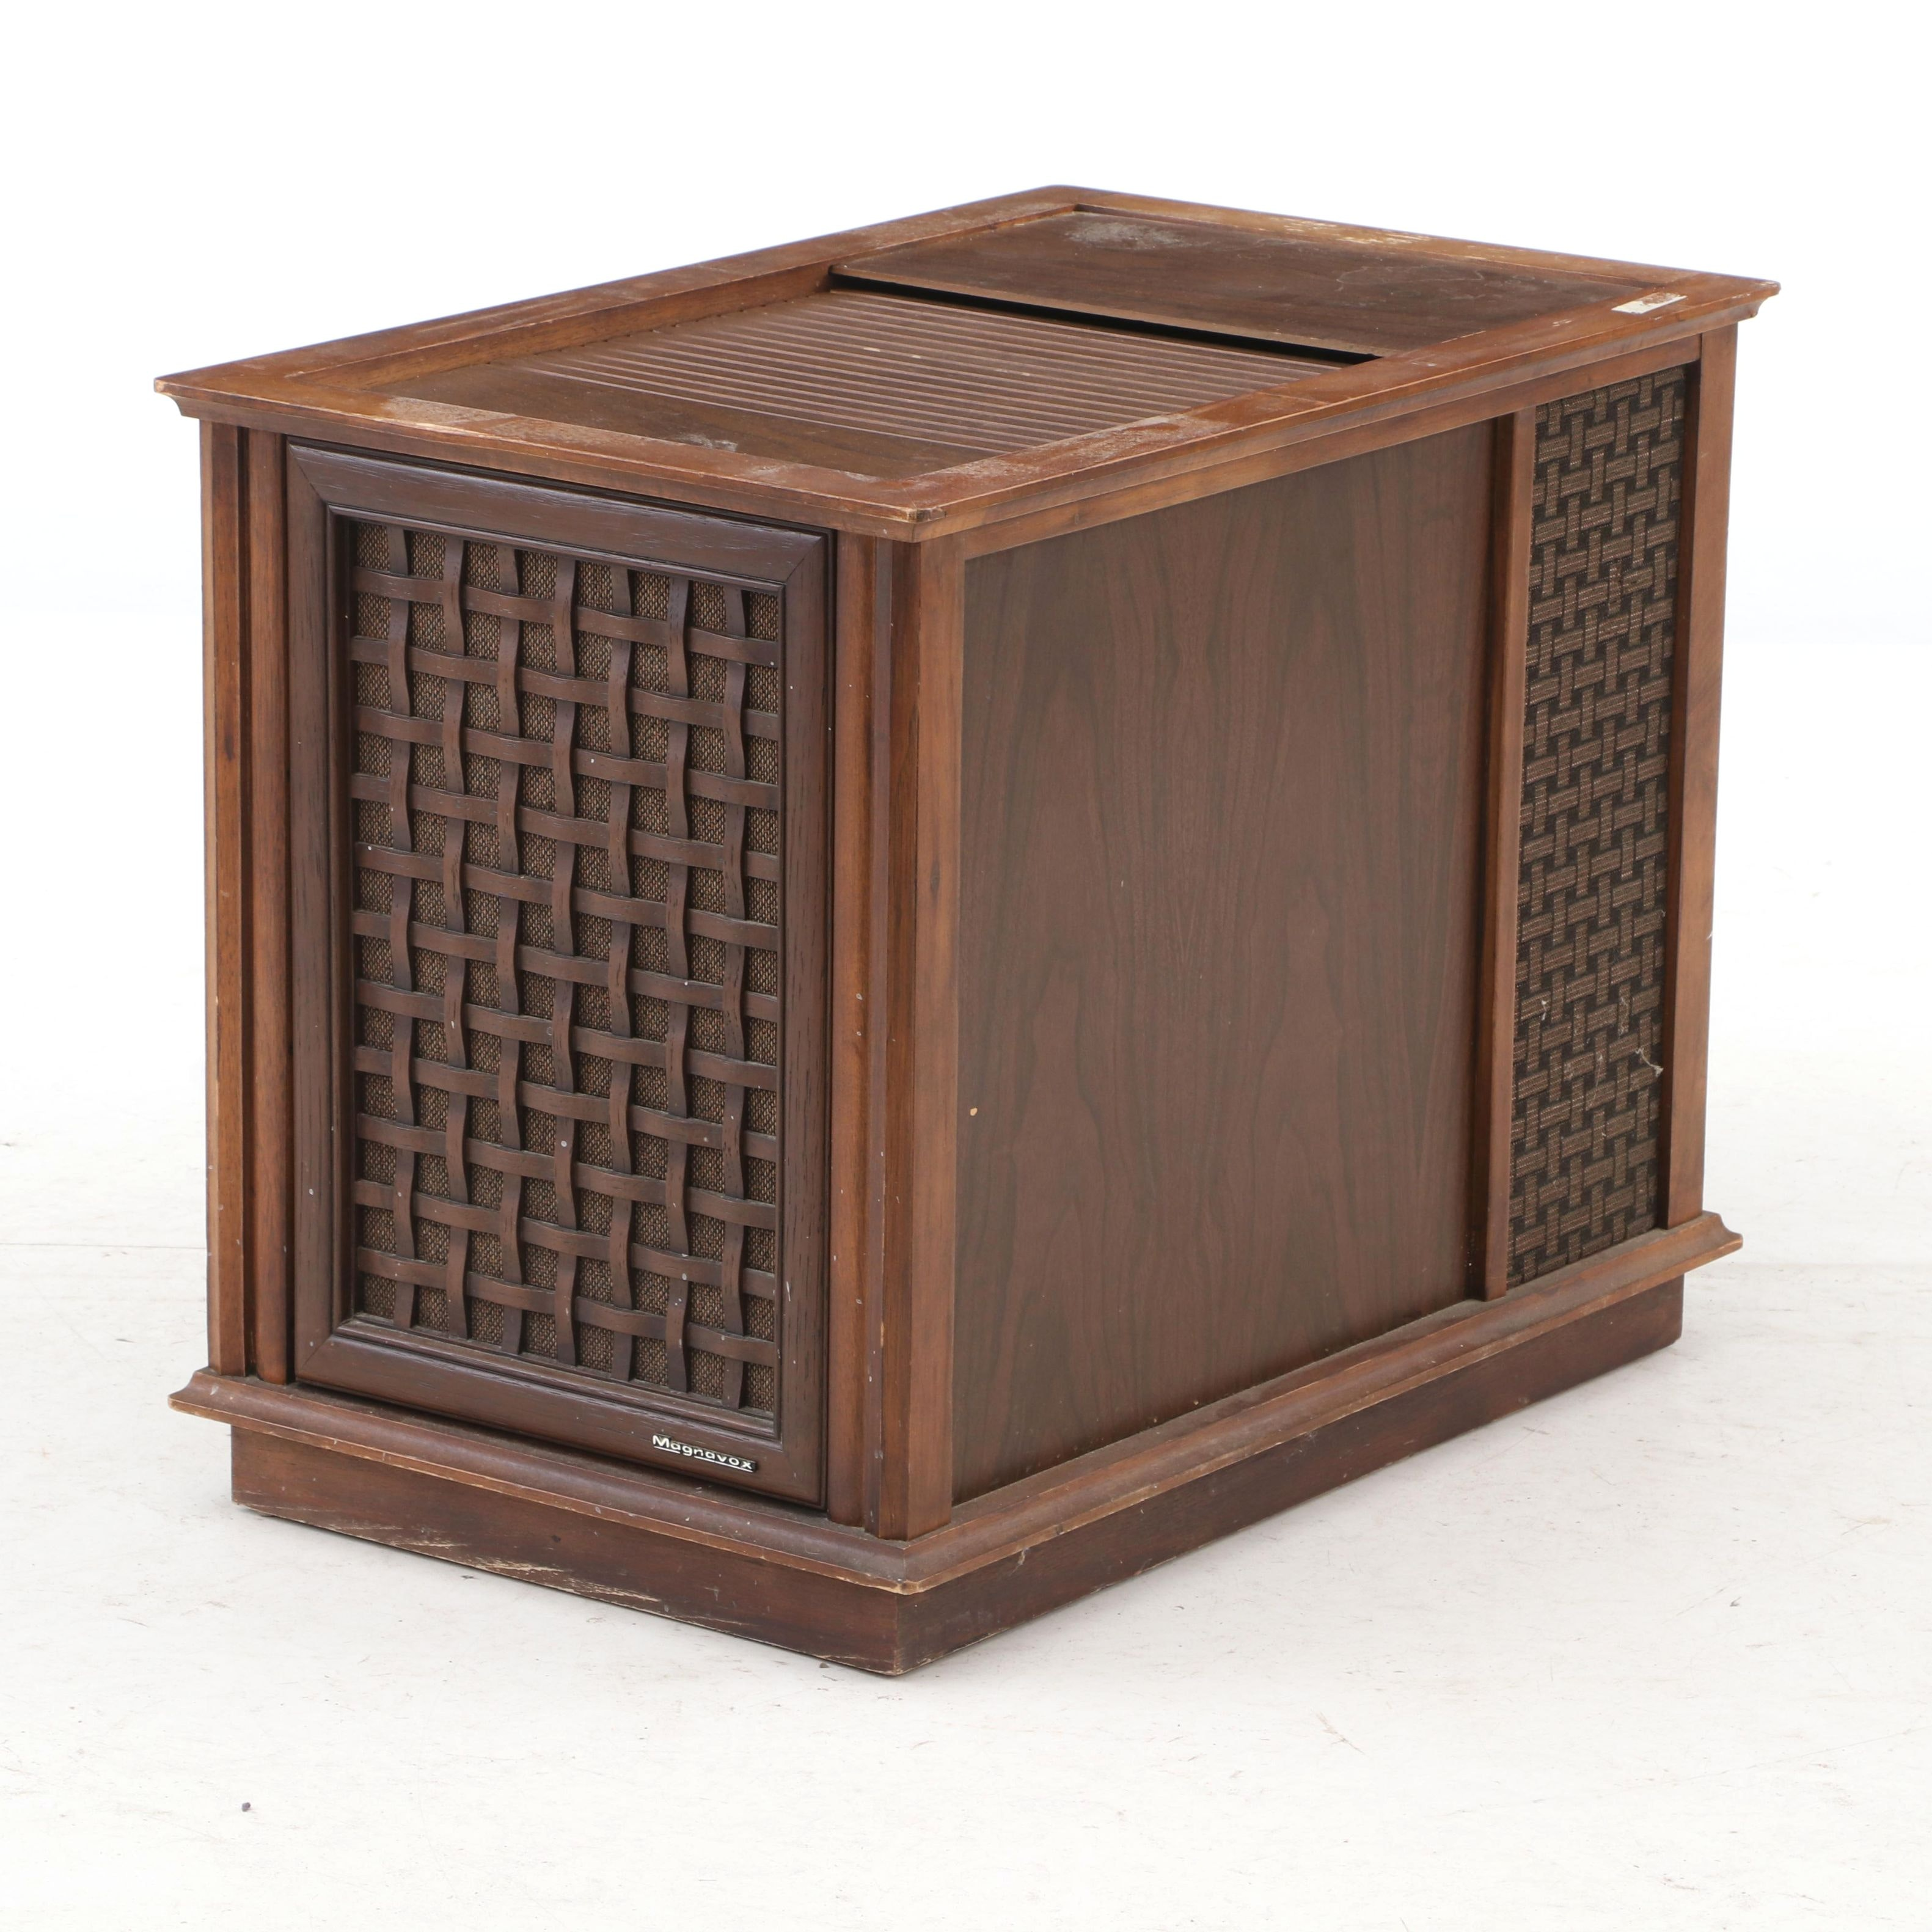 Vintage Magnavox Micromatic Stereo Cabinet